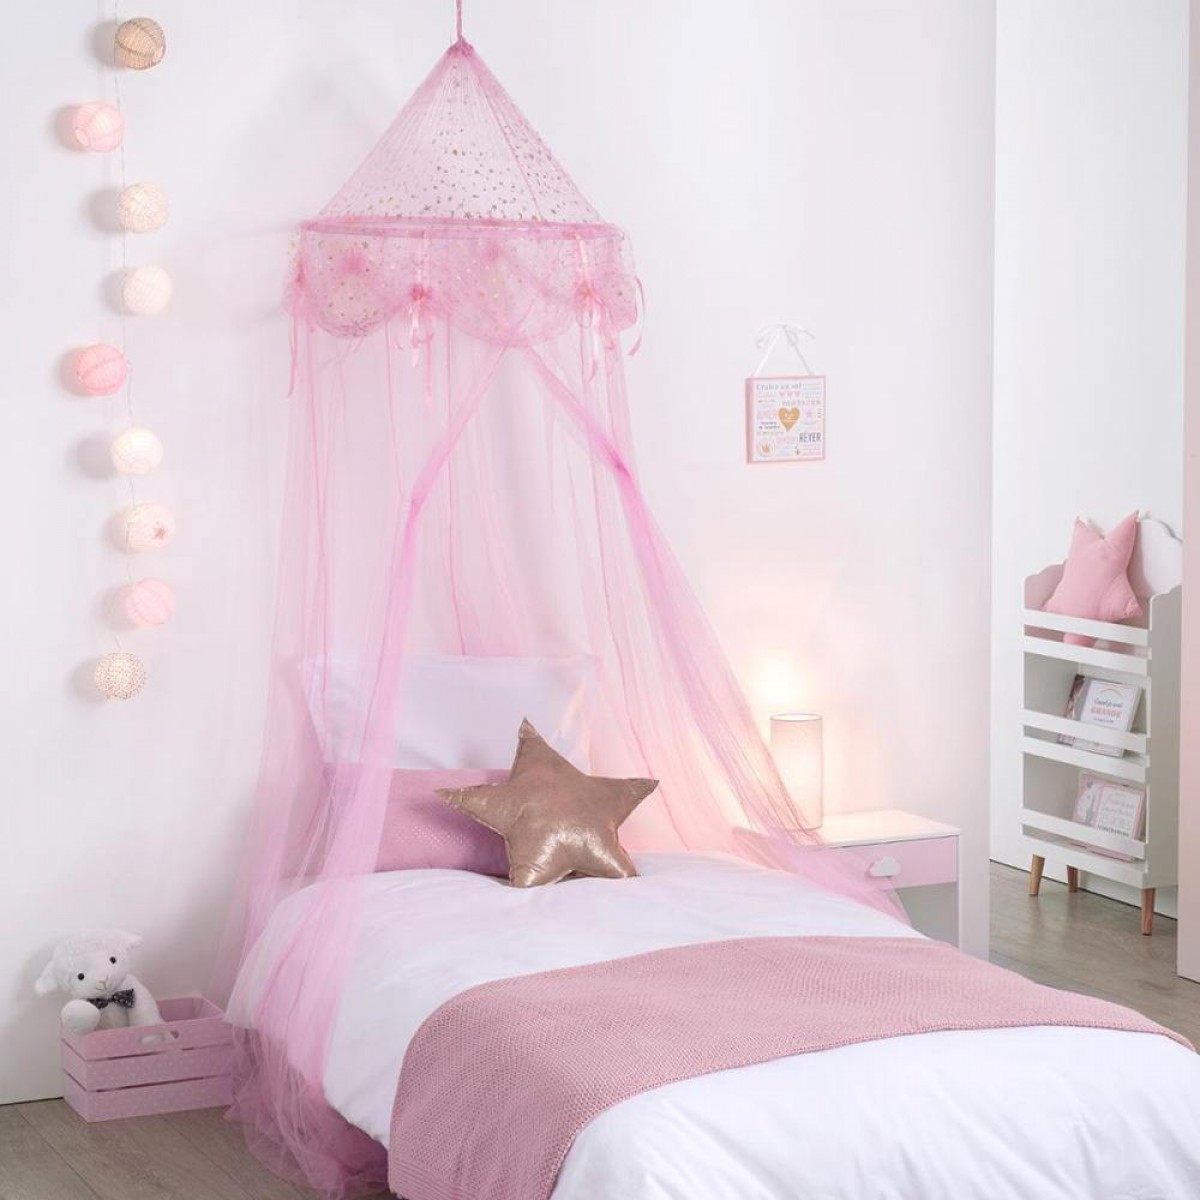 ciel de lit demoiselle rose les douces nuits de ma linge de maison. Black Bedroom Furniture Sets. Home Design Ideas